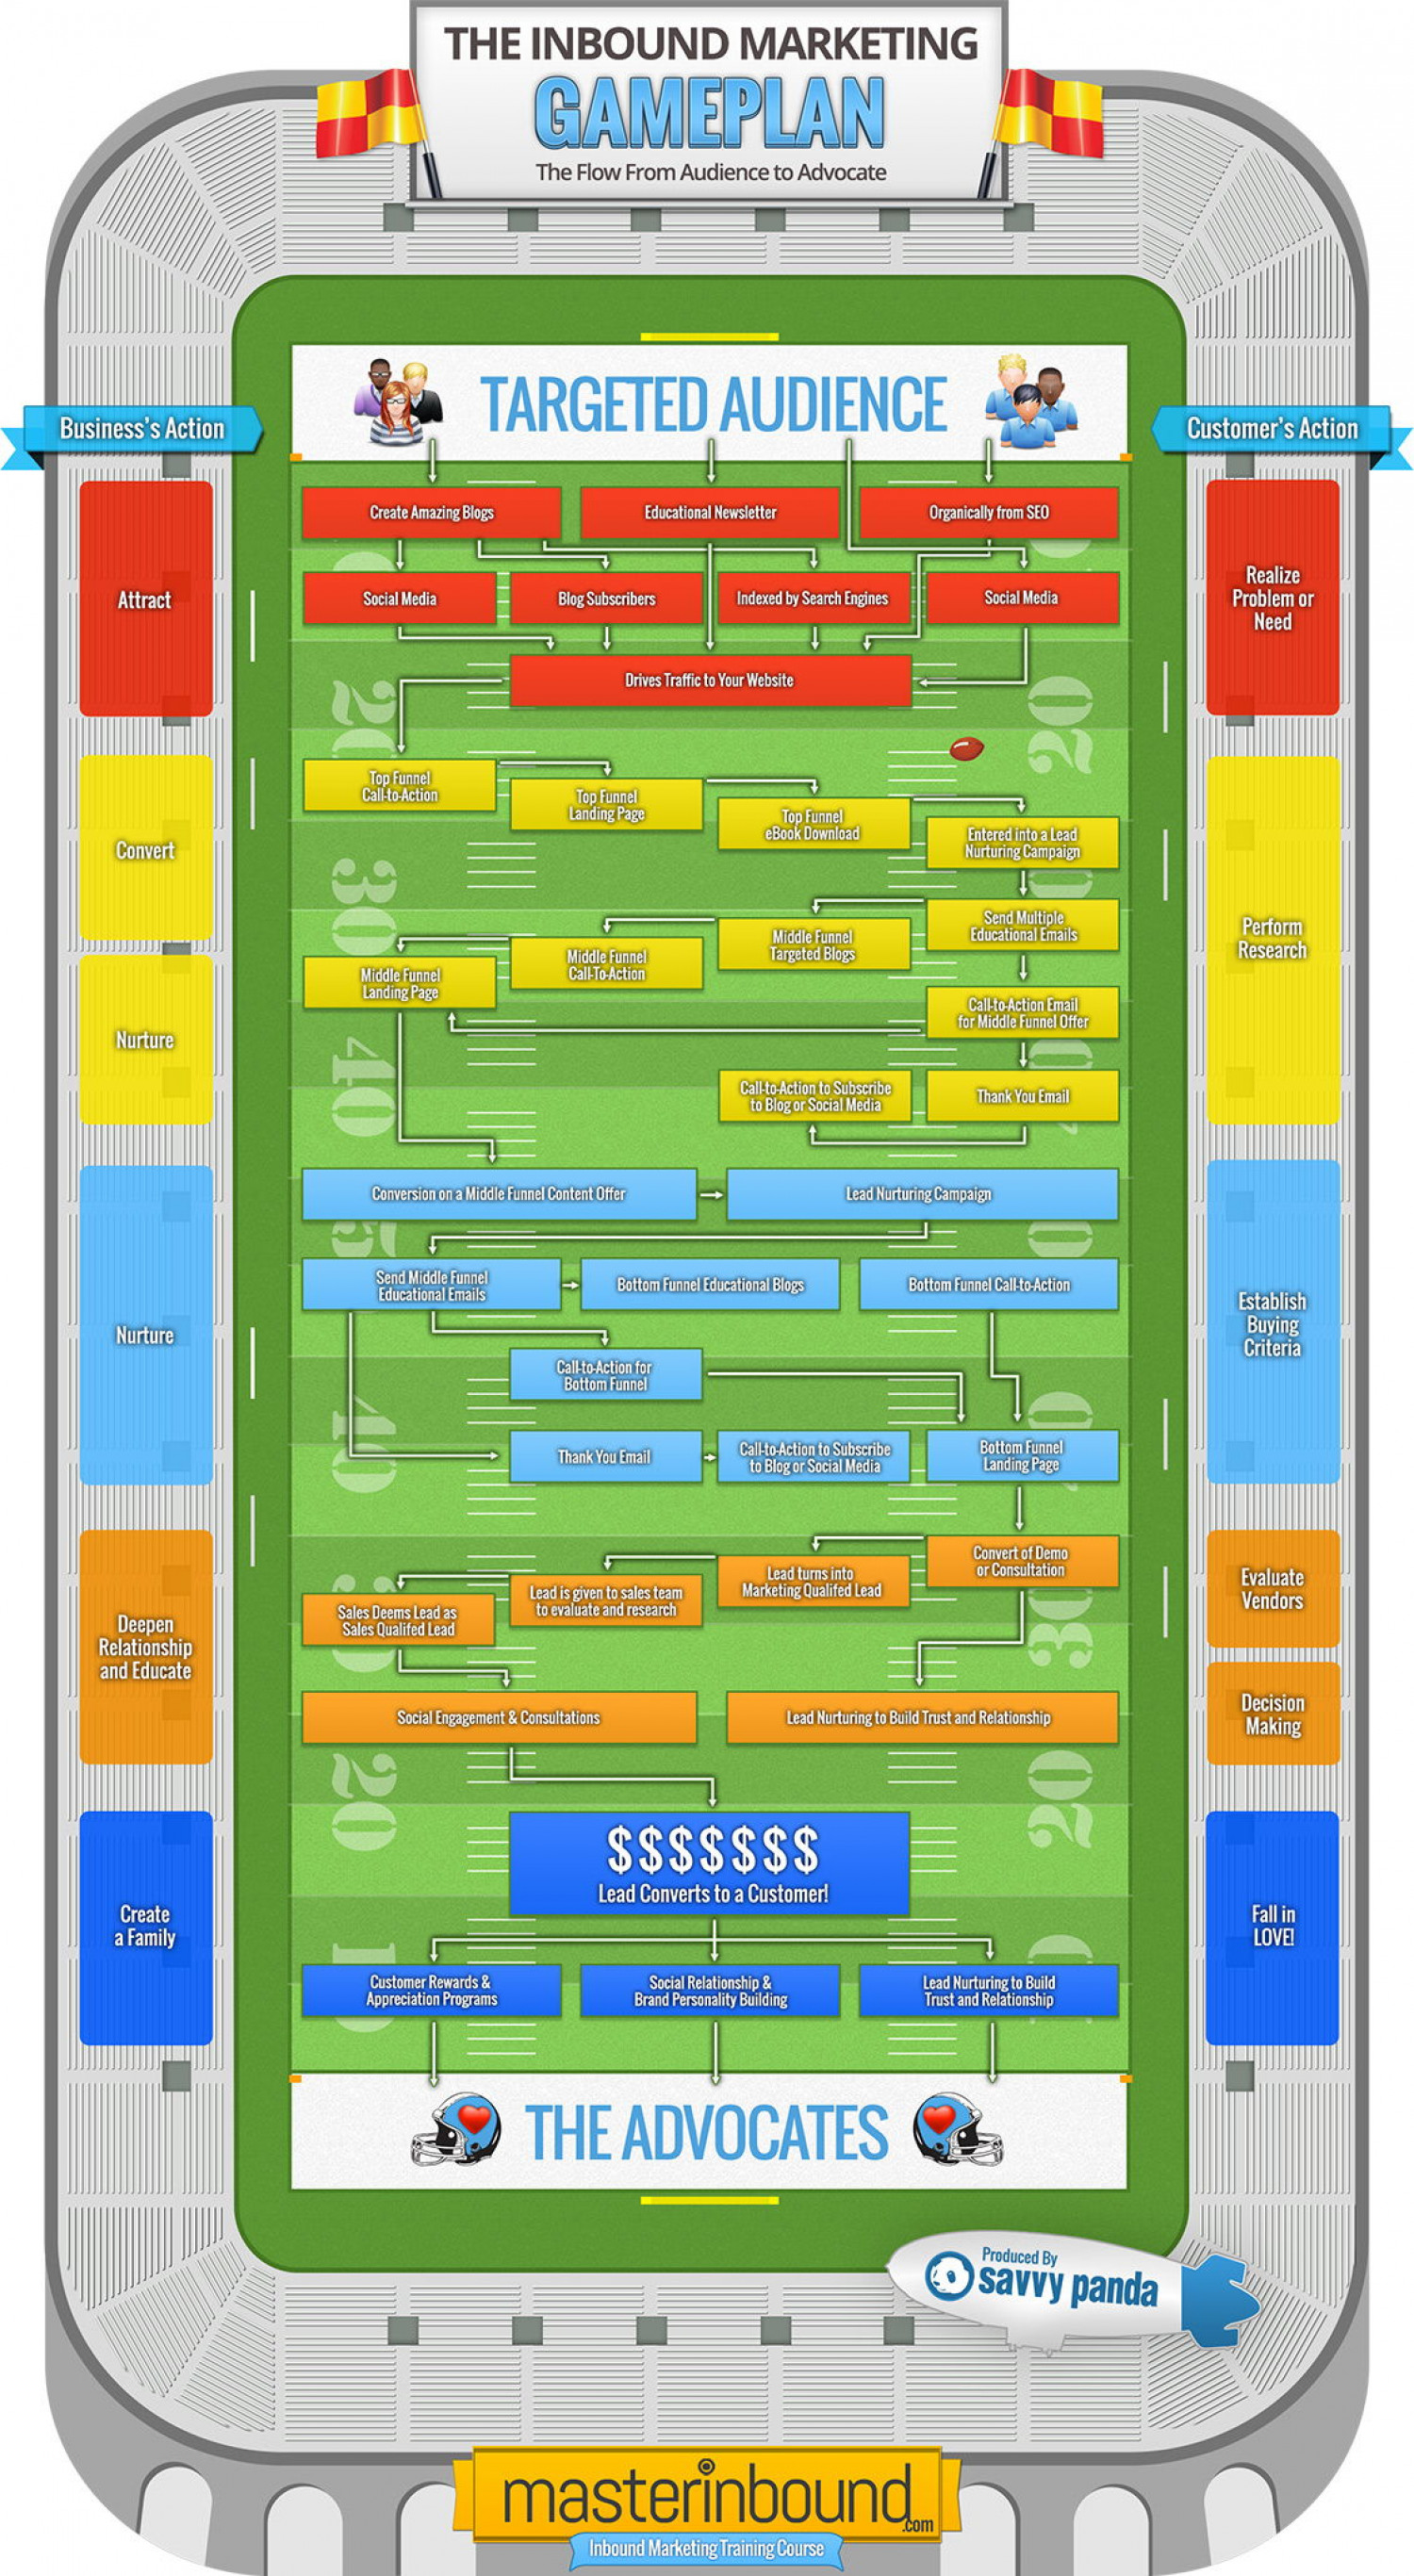 The Inbound Marketing Gameplan Infographic